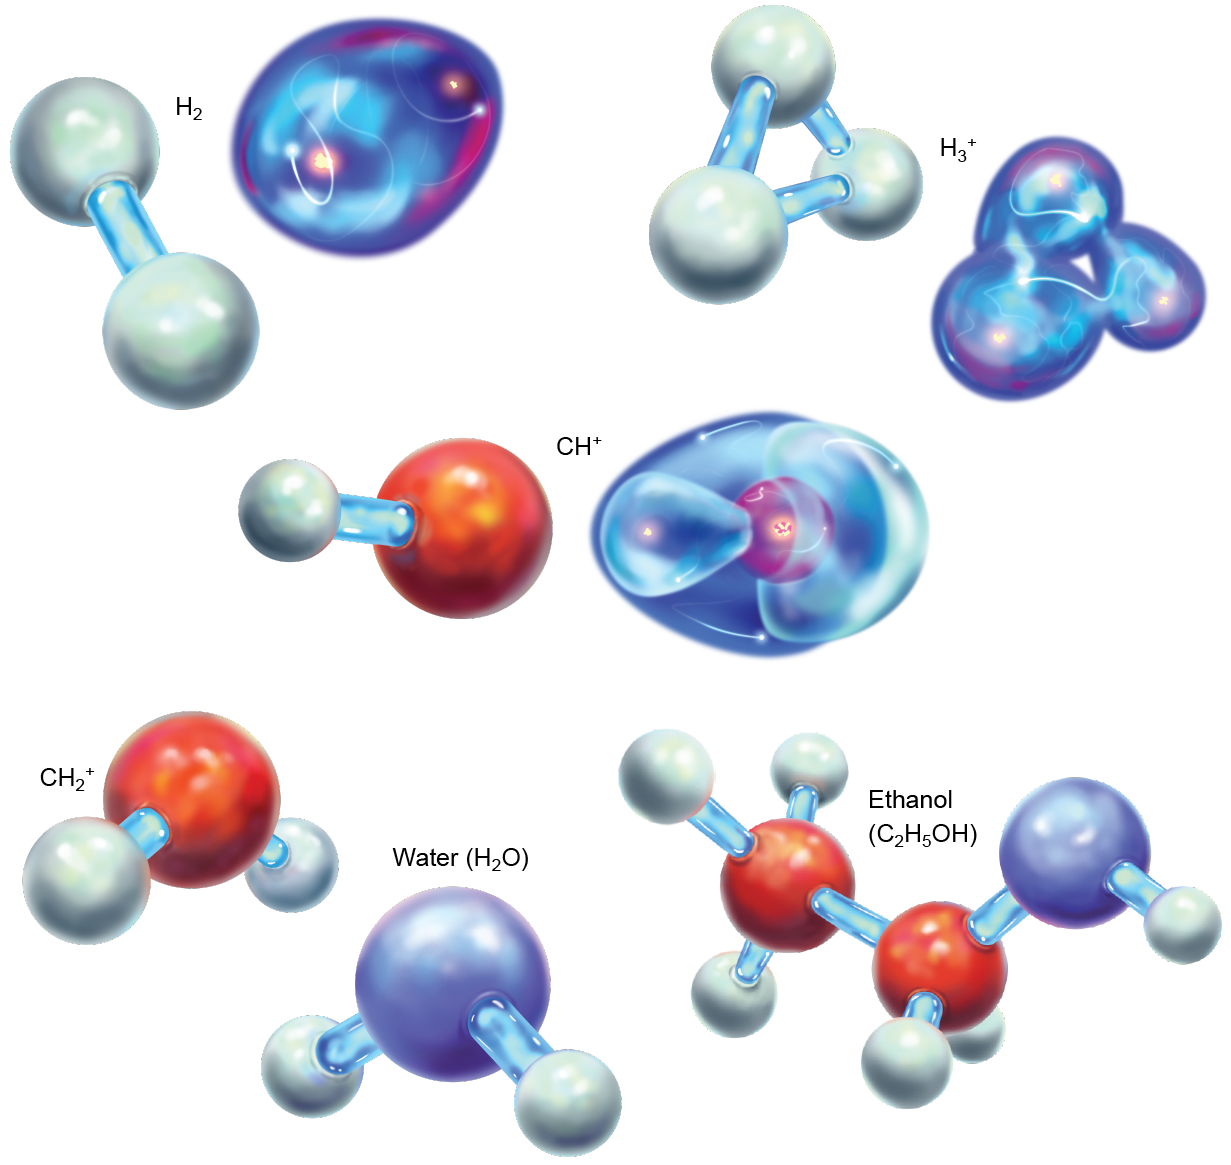 Stick-and-ball and orbital models of H2, H3+, and CH+; and stick-and-ball models of CH2+, H2O and C2H5OH